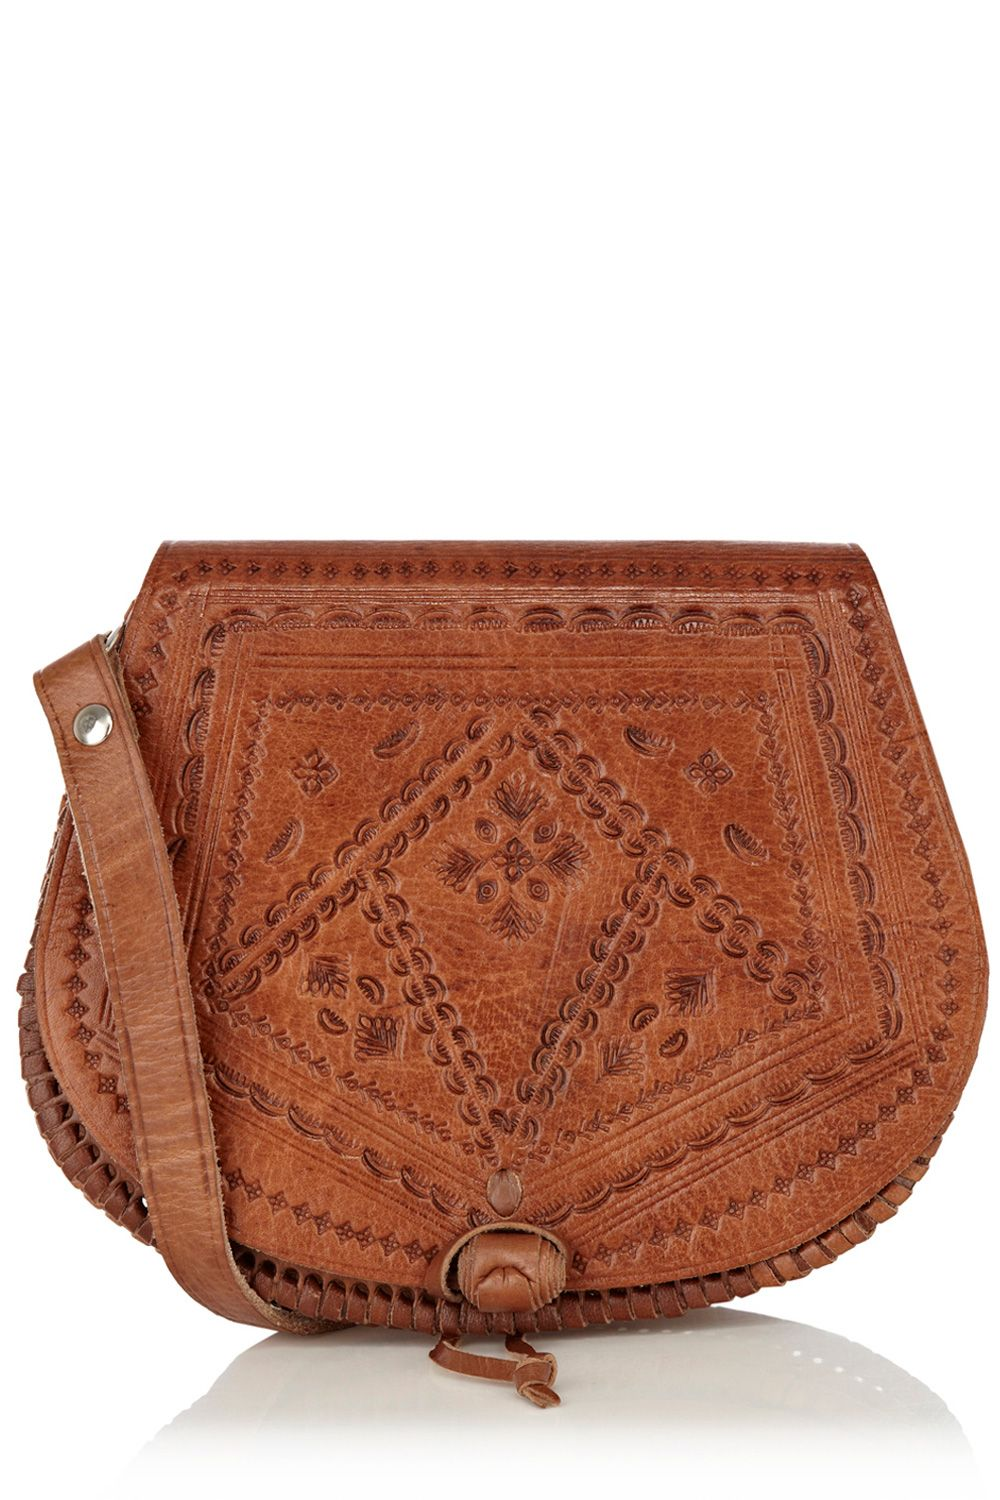 Tooled cross body leather bag